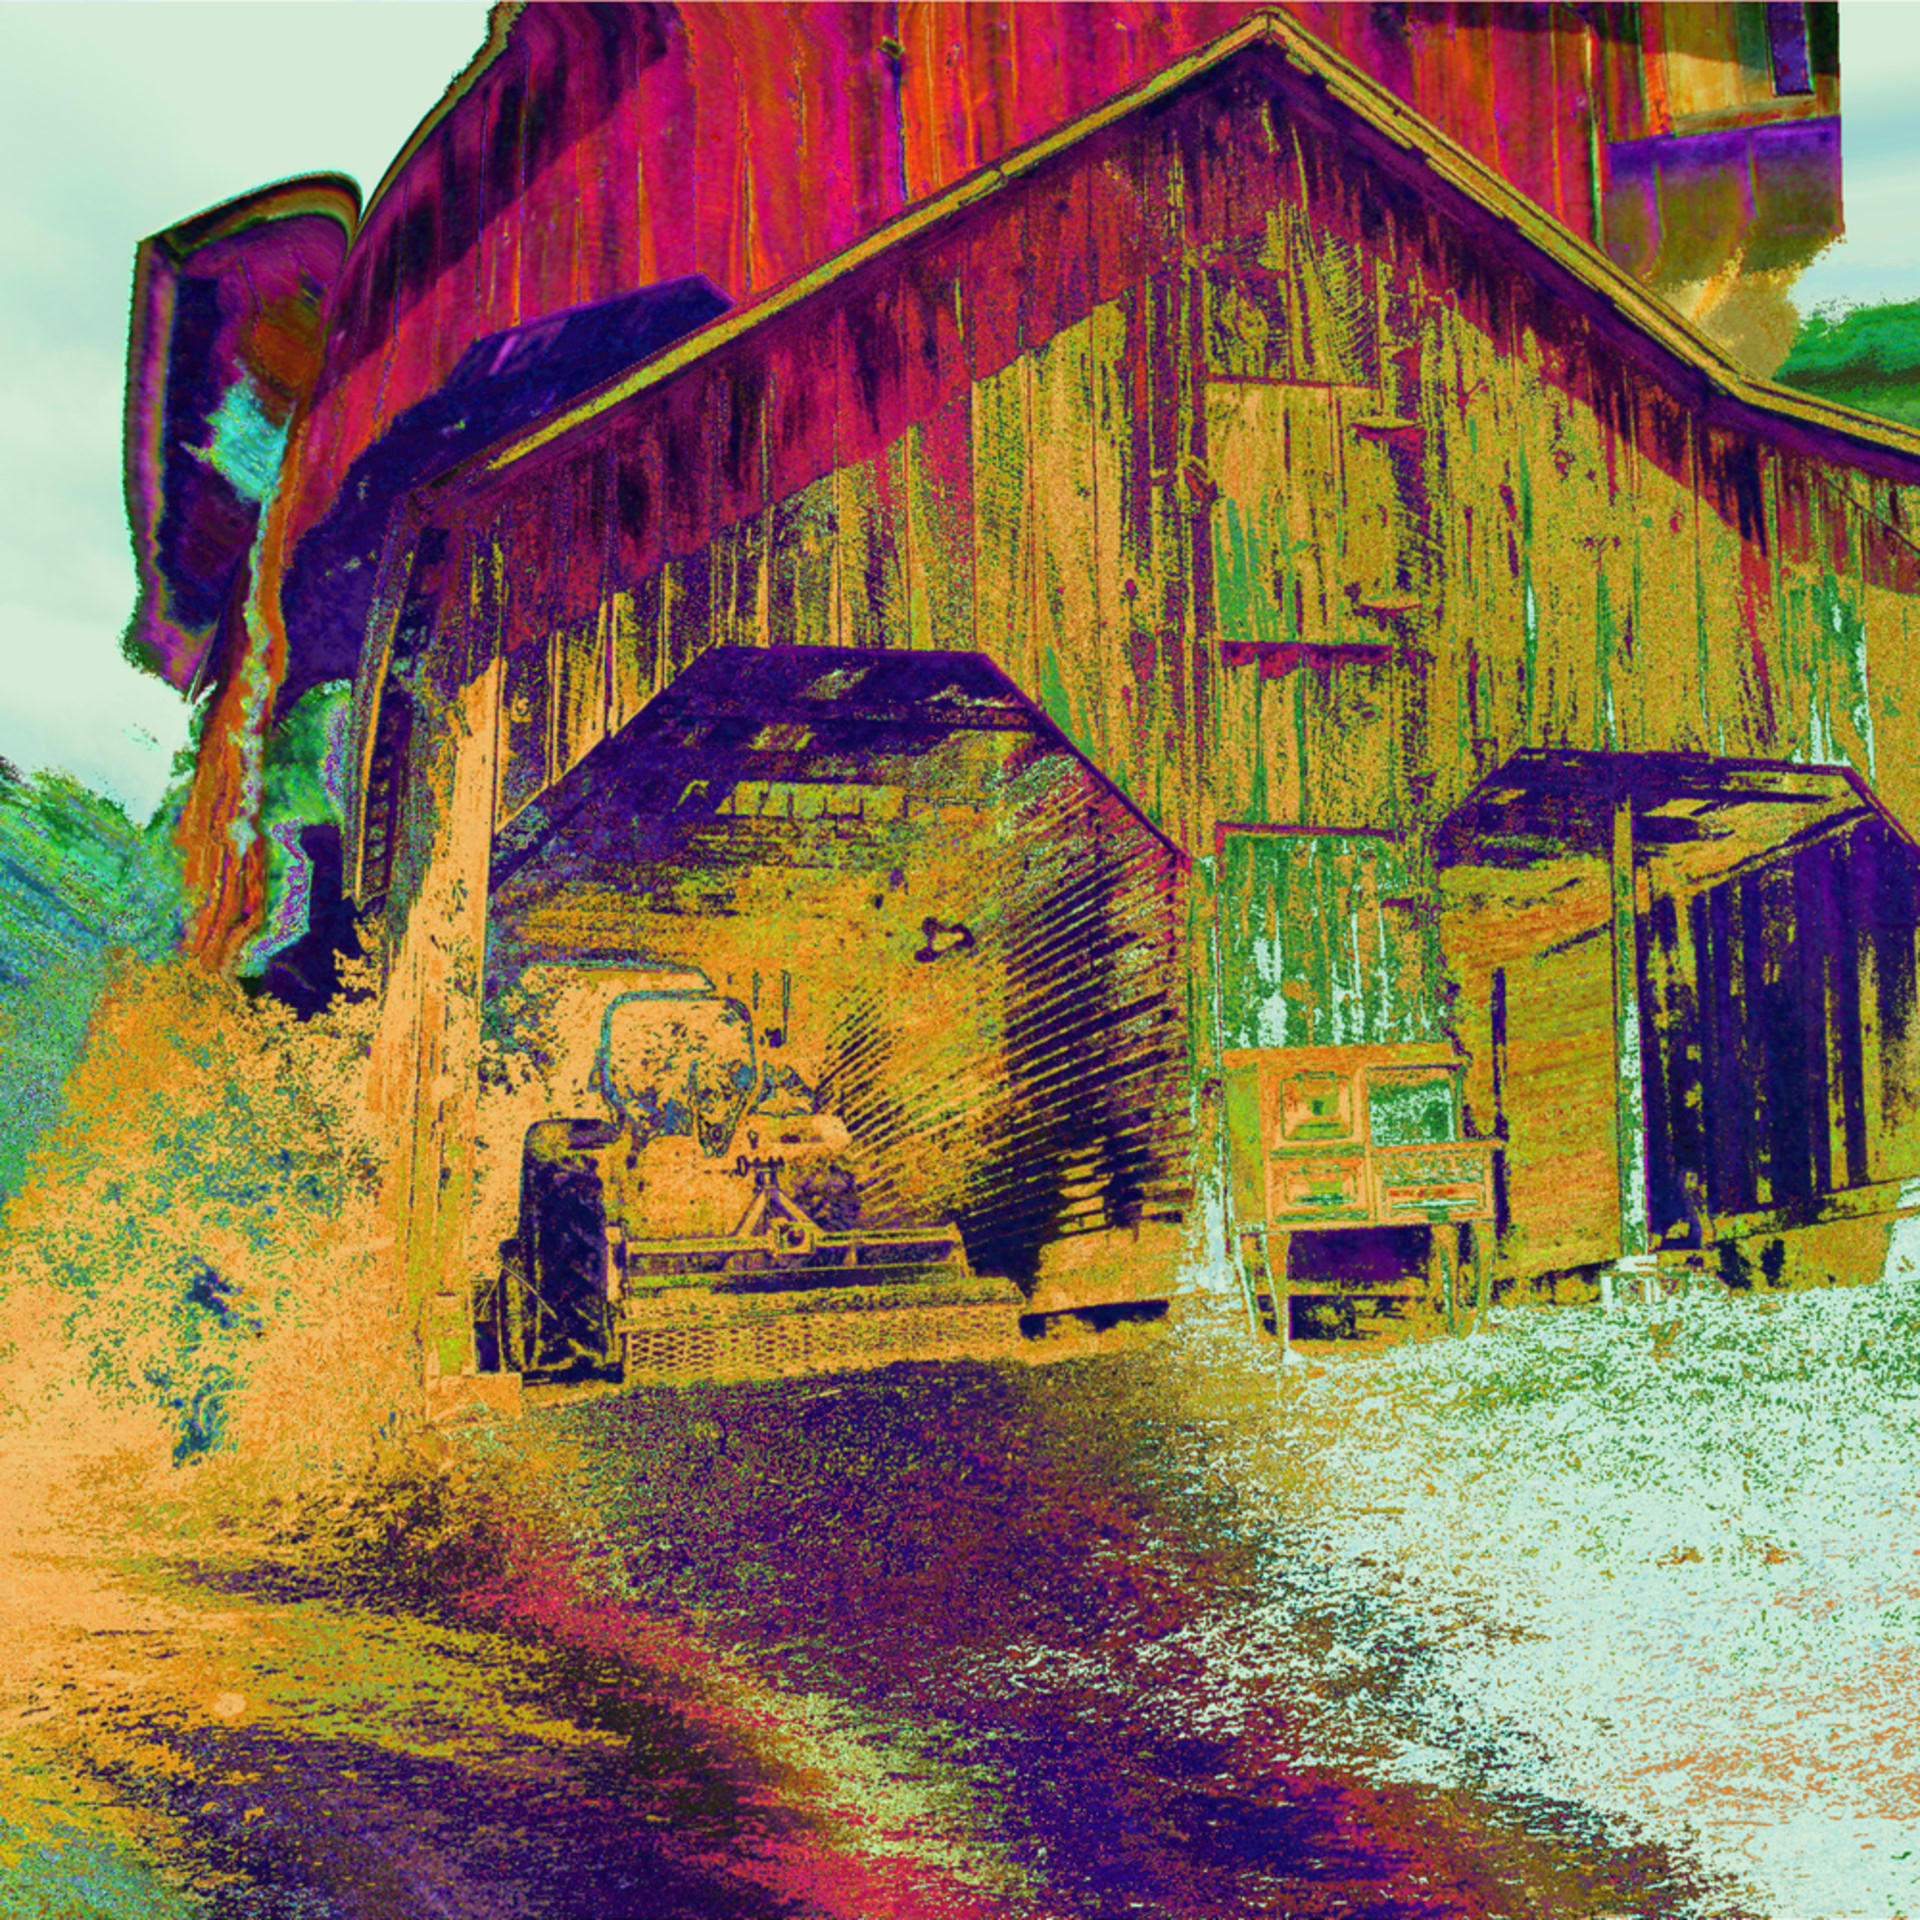 Mikes colorful barn i rvbgqt